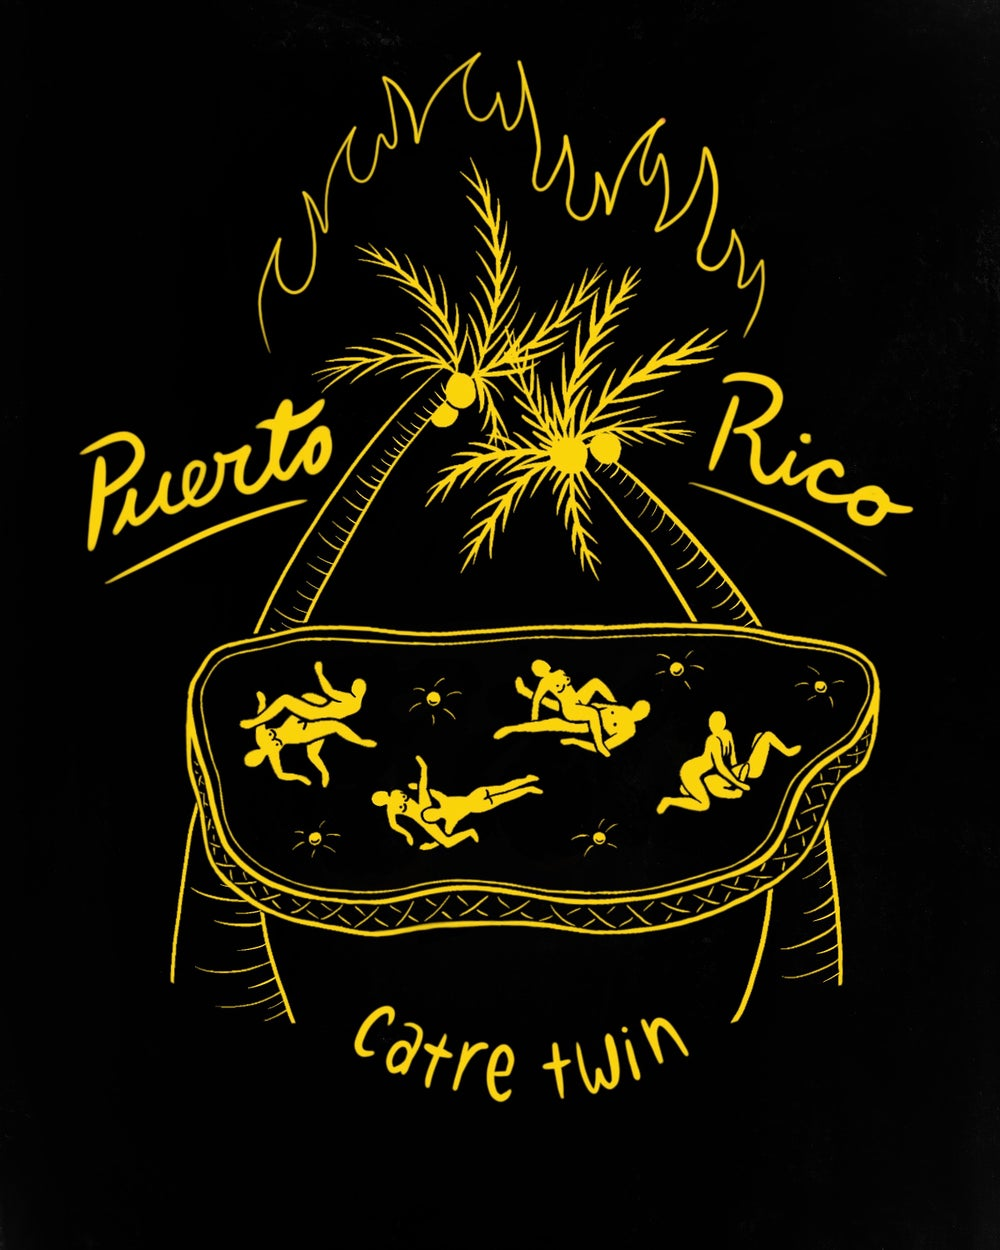 Image of Puerto Rico Catre Twin T-SHIRT